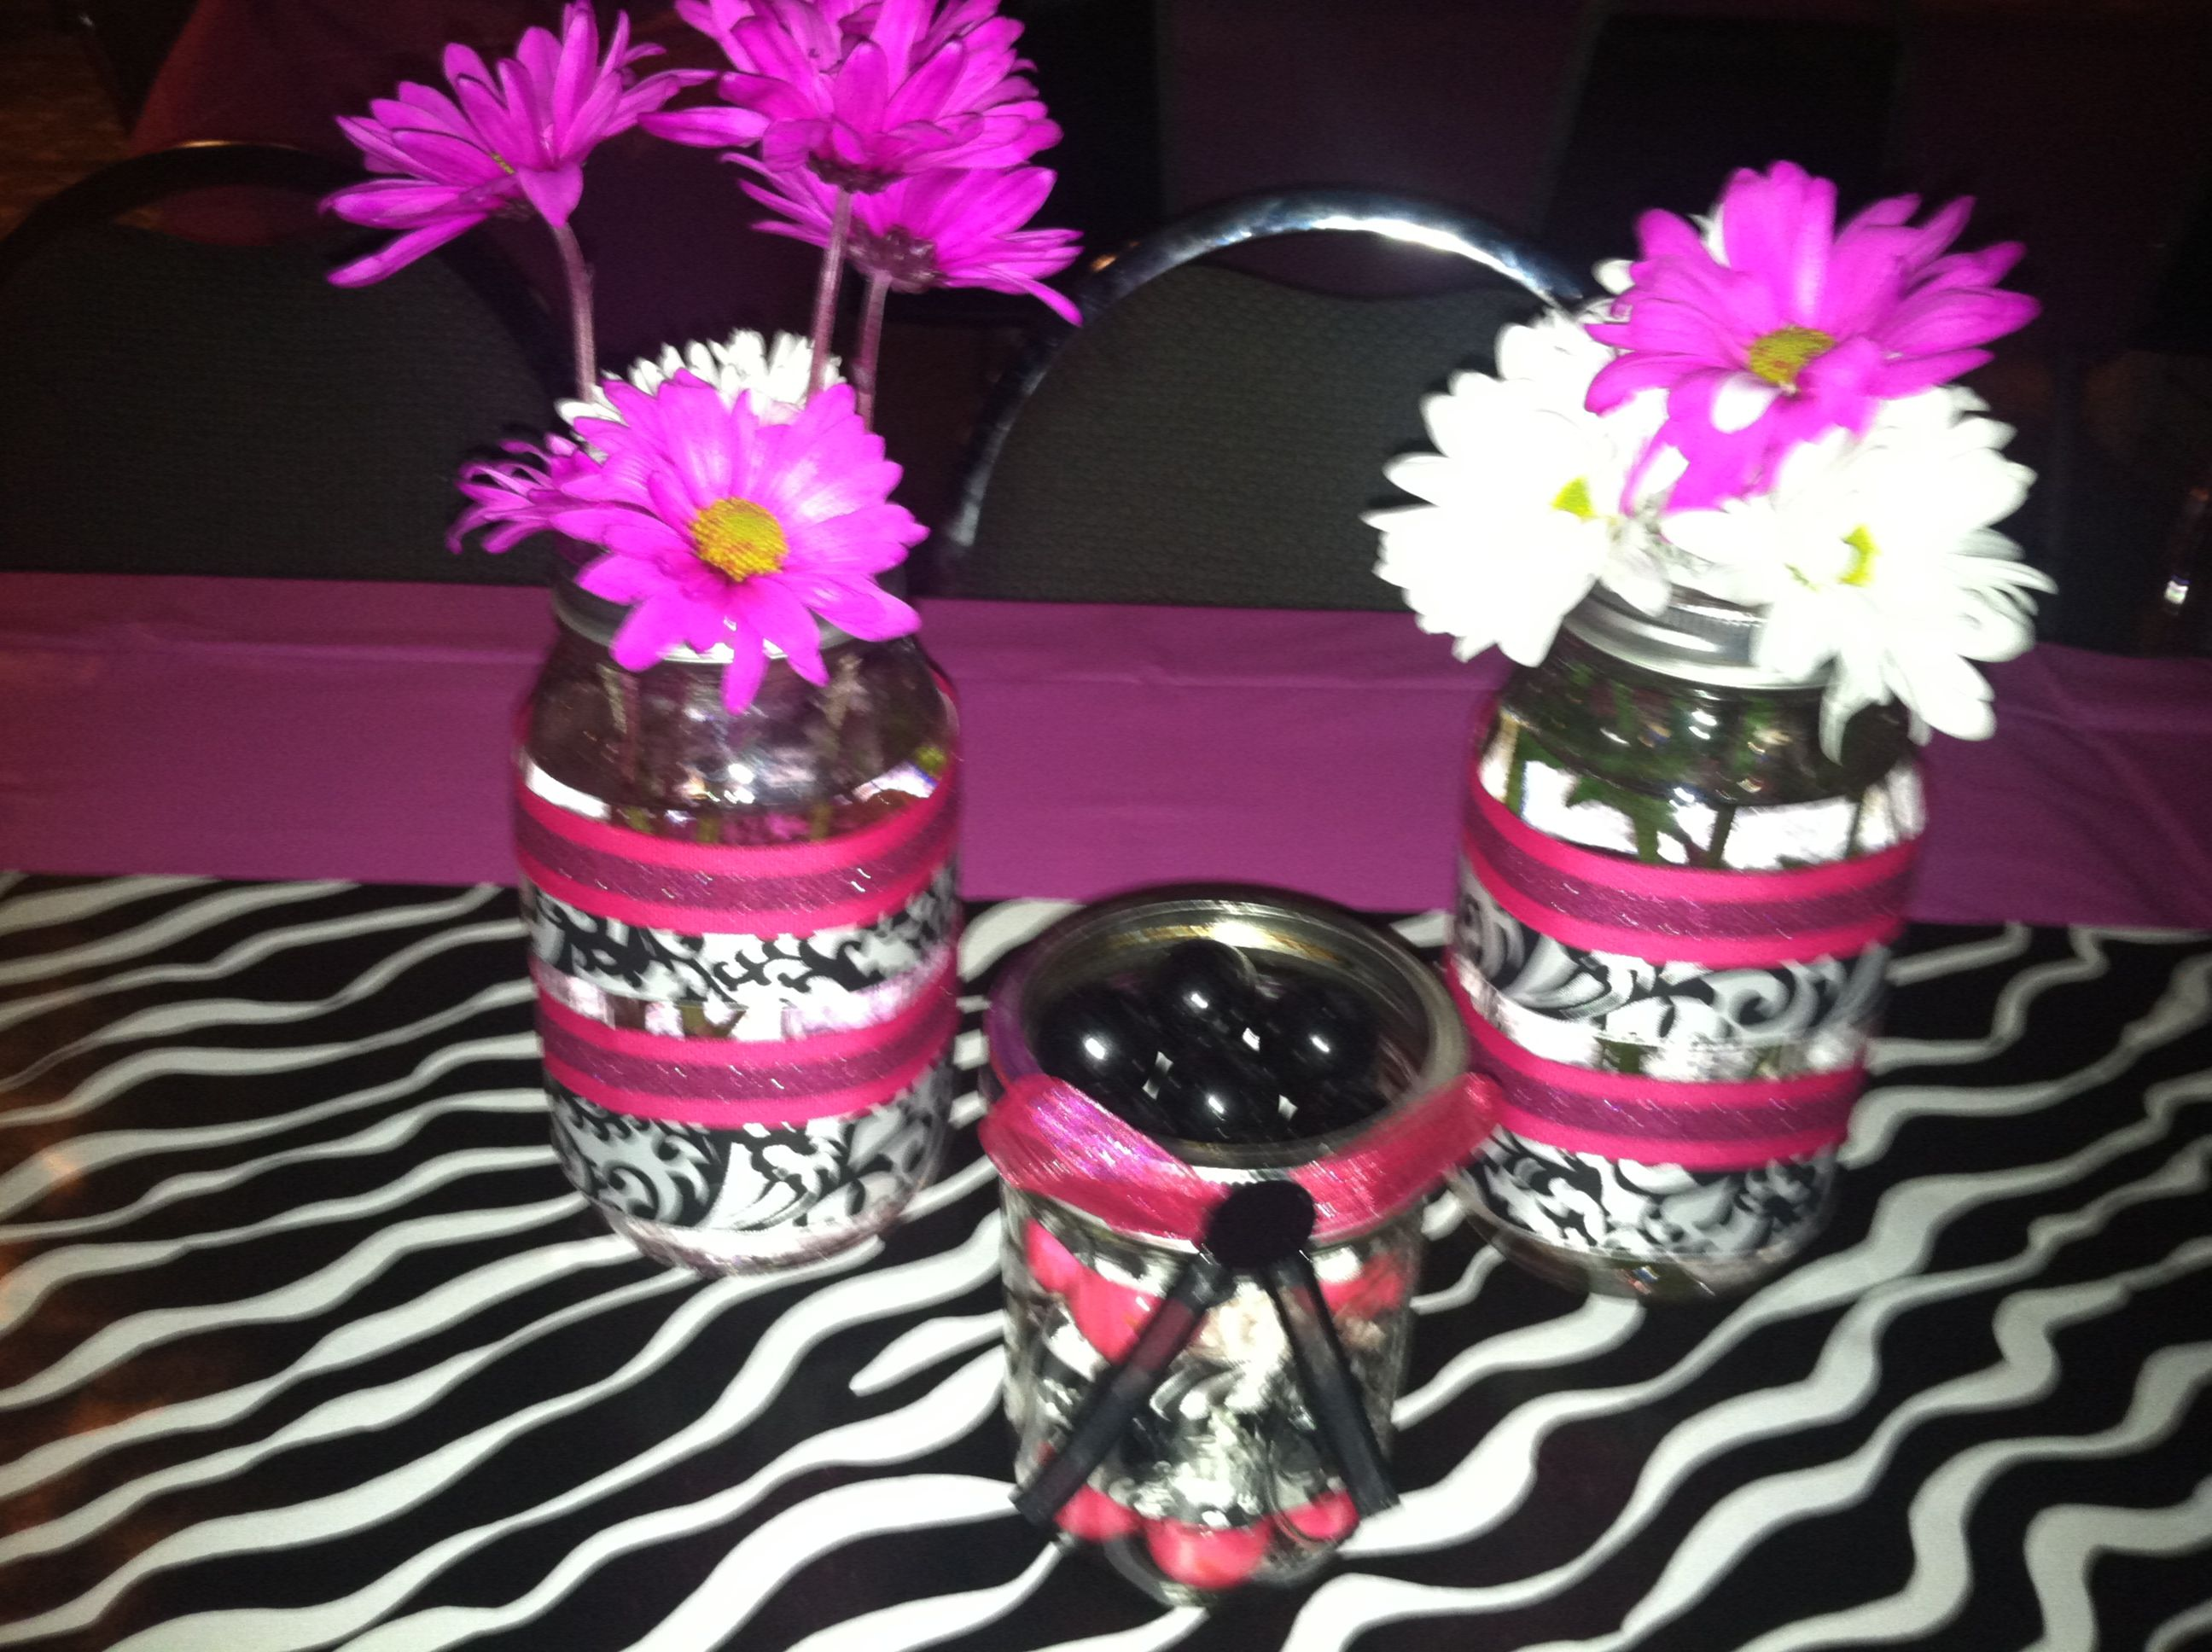 40th birthday party decorations I made Pink black and zebra theme